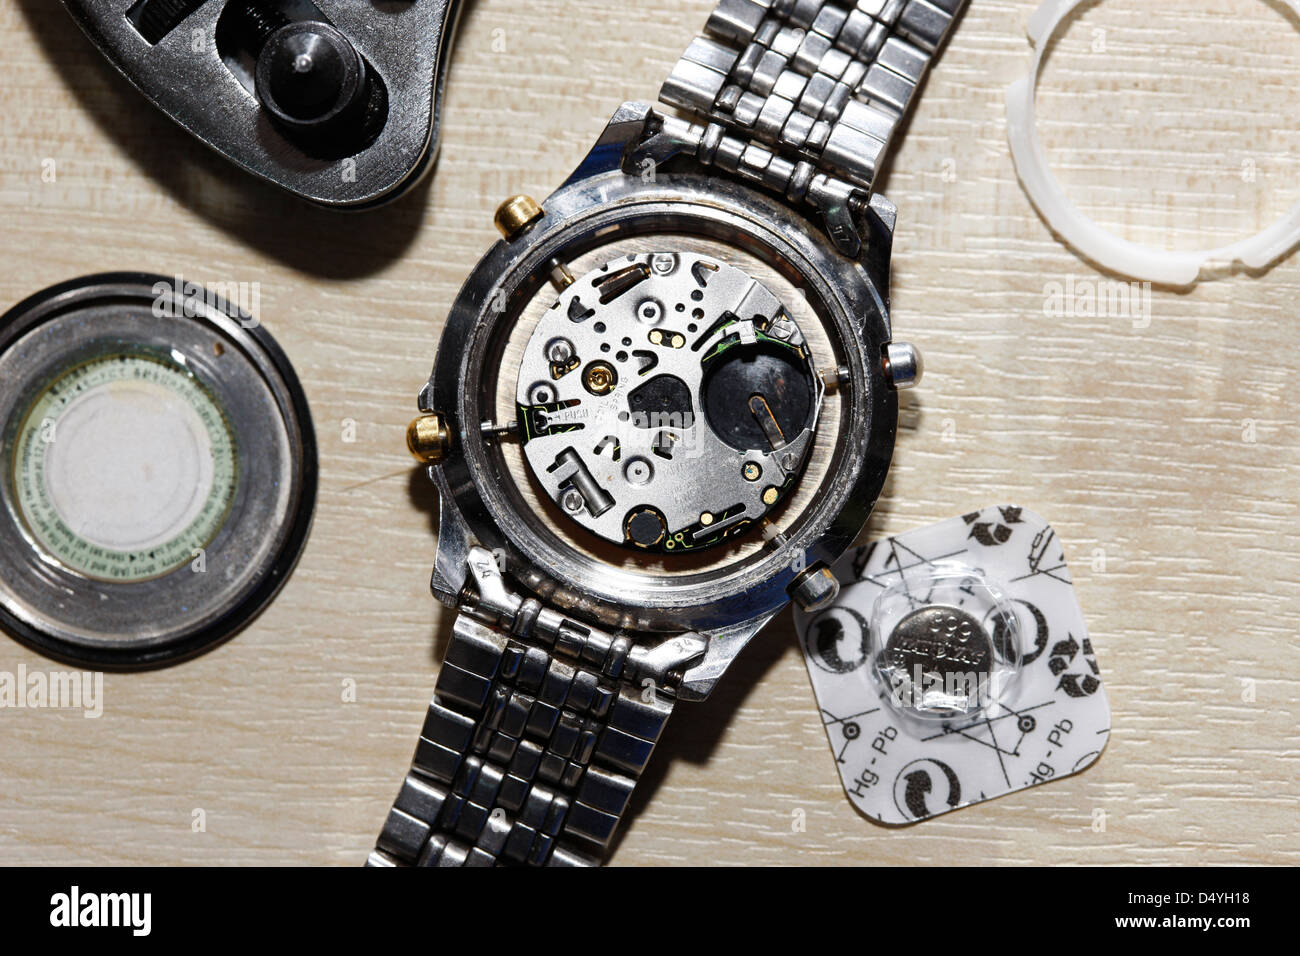 replacing the battery in a metal band wristwatch - Stock Image